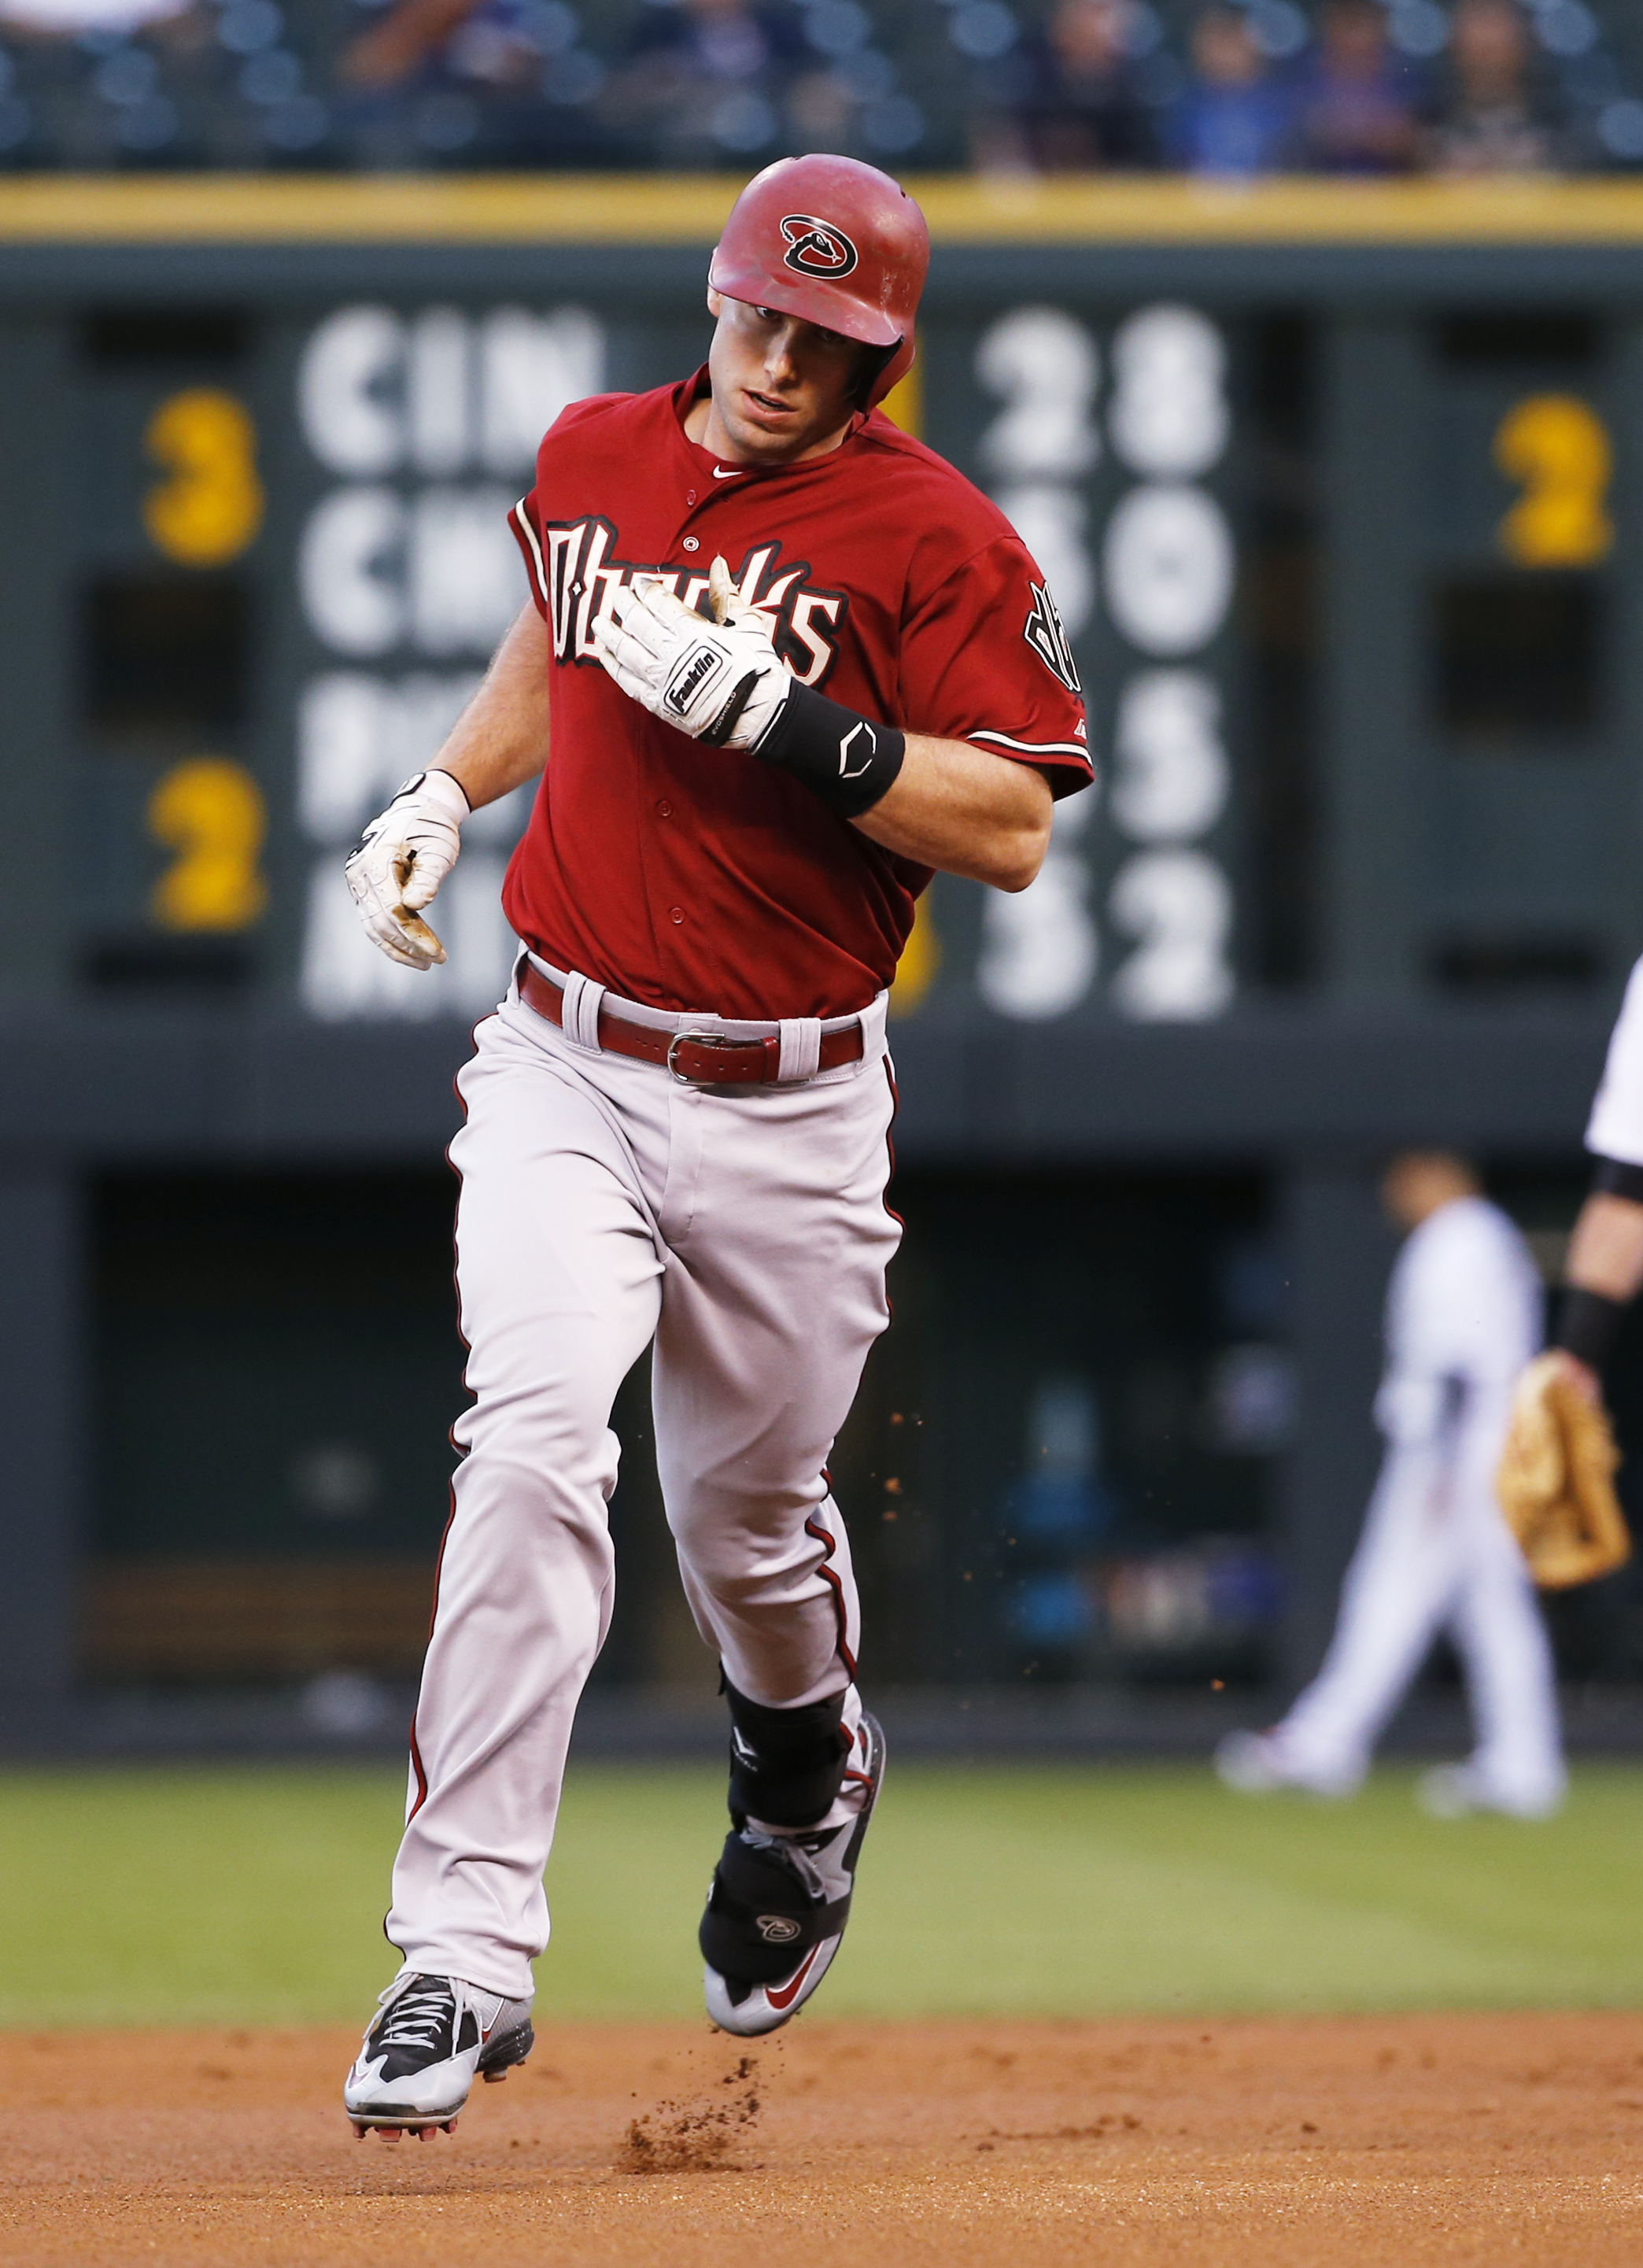 Arizona Diamondbacks' Paul Goldschmidt rounds the bases after hitting a solo home run off Colorado Rockies starting pitcher Kyle Kendrick during the first inning of the second game of a baseball doubleheader Tuesday, Sept. 1, 2015, in Denver. (AP Photo/Ja